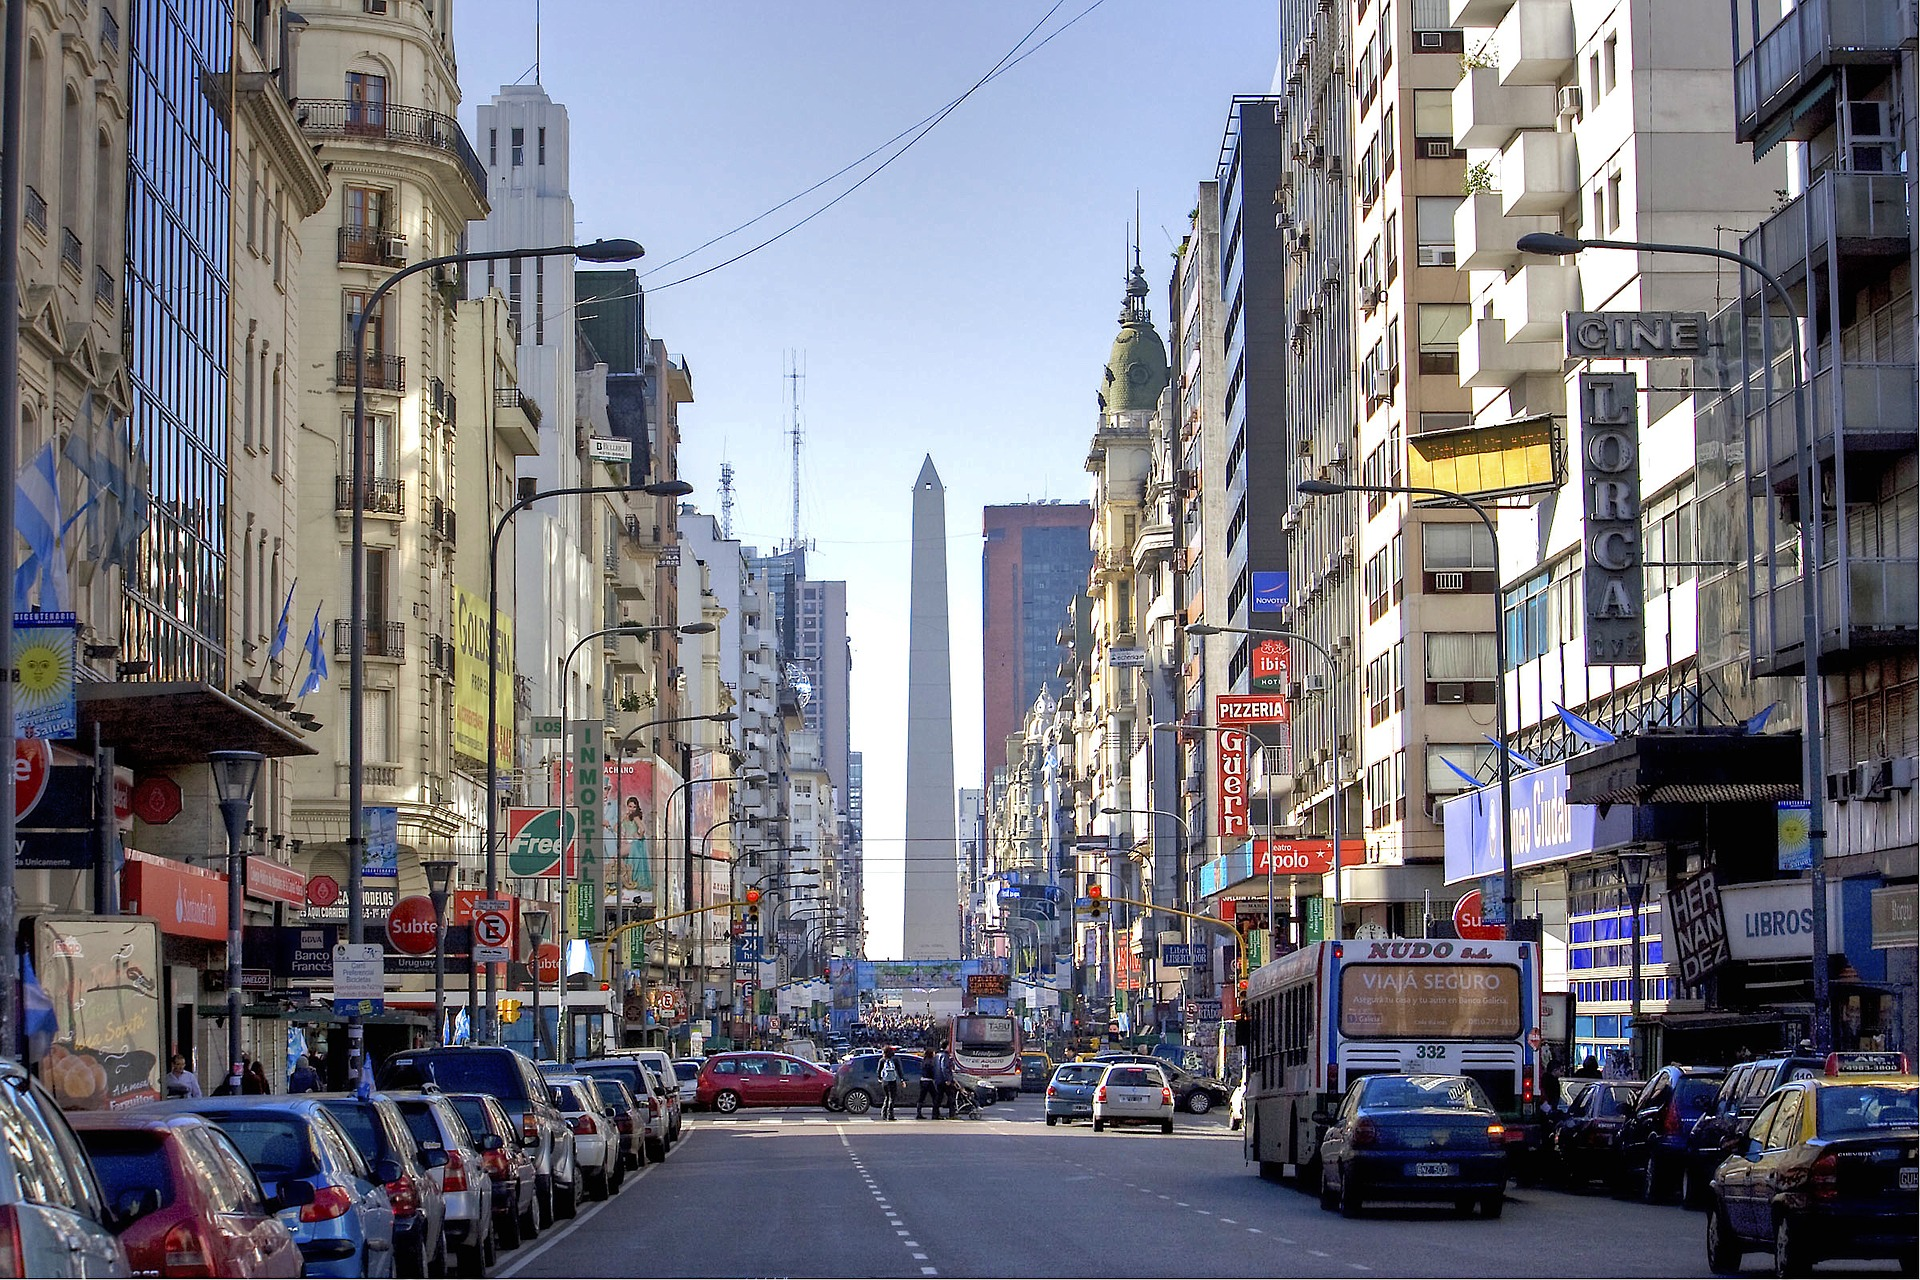 Public Funding Opportunity: Argentina Secures USD 80 Million World Bank Loan to Improve Public Digital Services